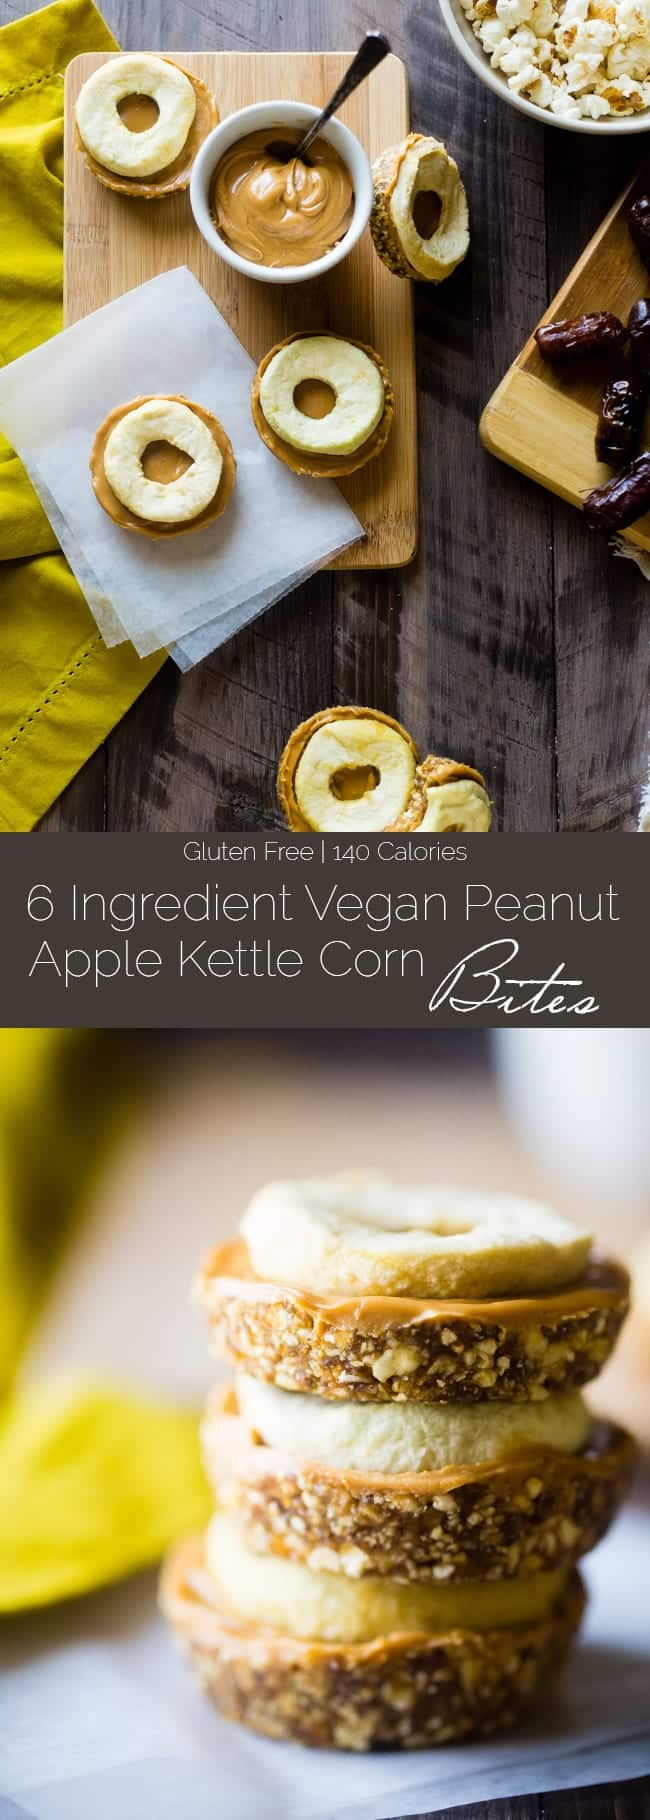 6 Ingredient Vegan Peanut Apple Kettle Corn Bites - These salty-sweet bites are an easy, healthy and gluten free fall snack that's ready in 15 minutes and are only 140 calories! | Foodfaithfitness.com | @FoodFaithFit